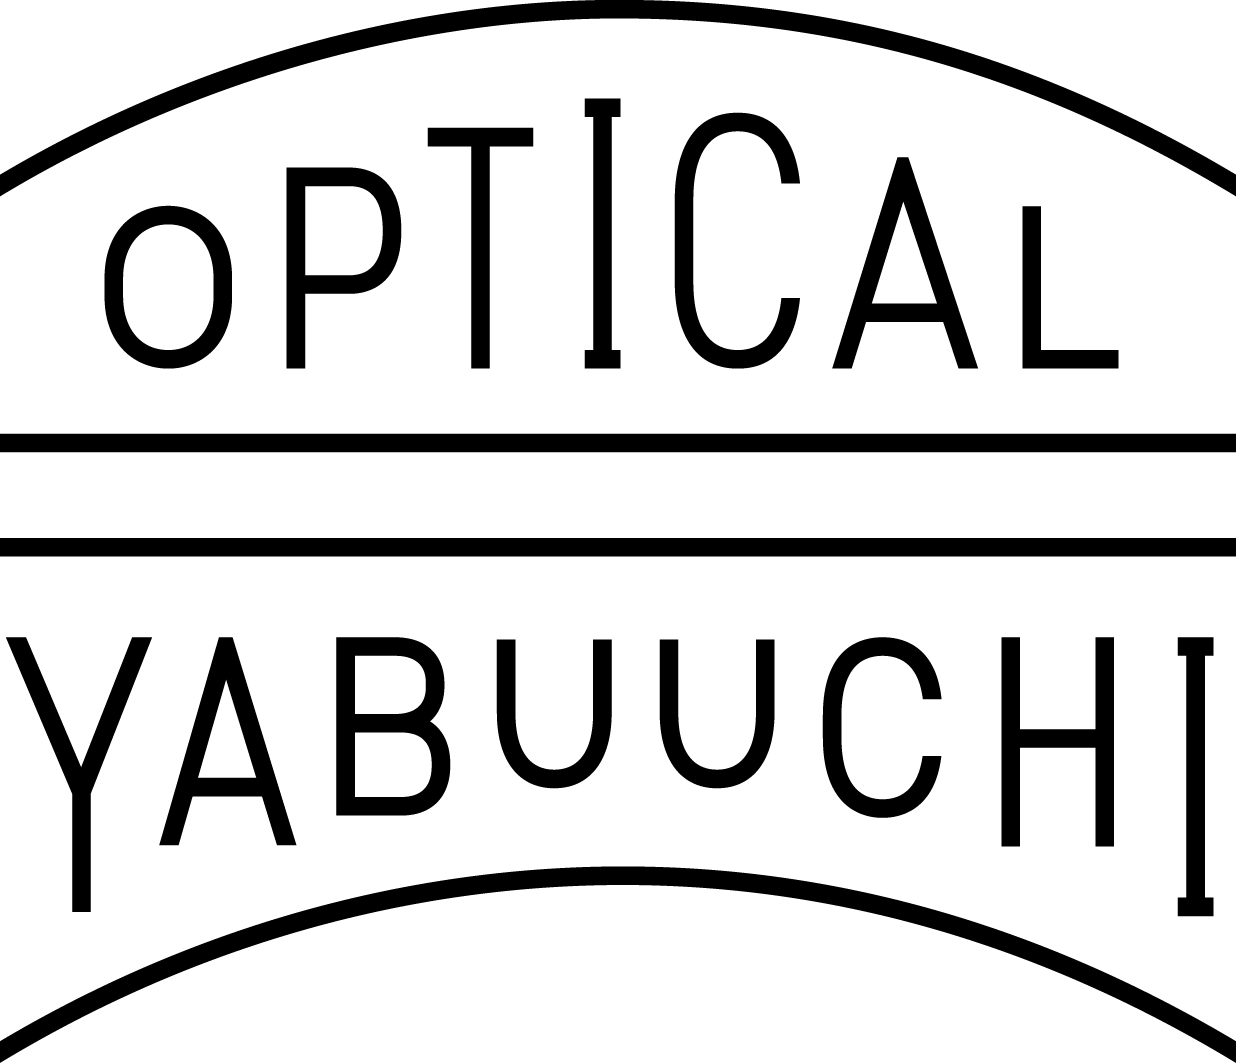 OPTICAL YABUUCHI